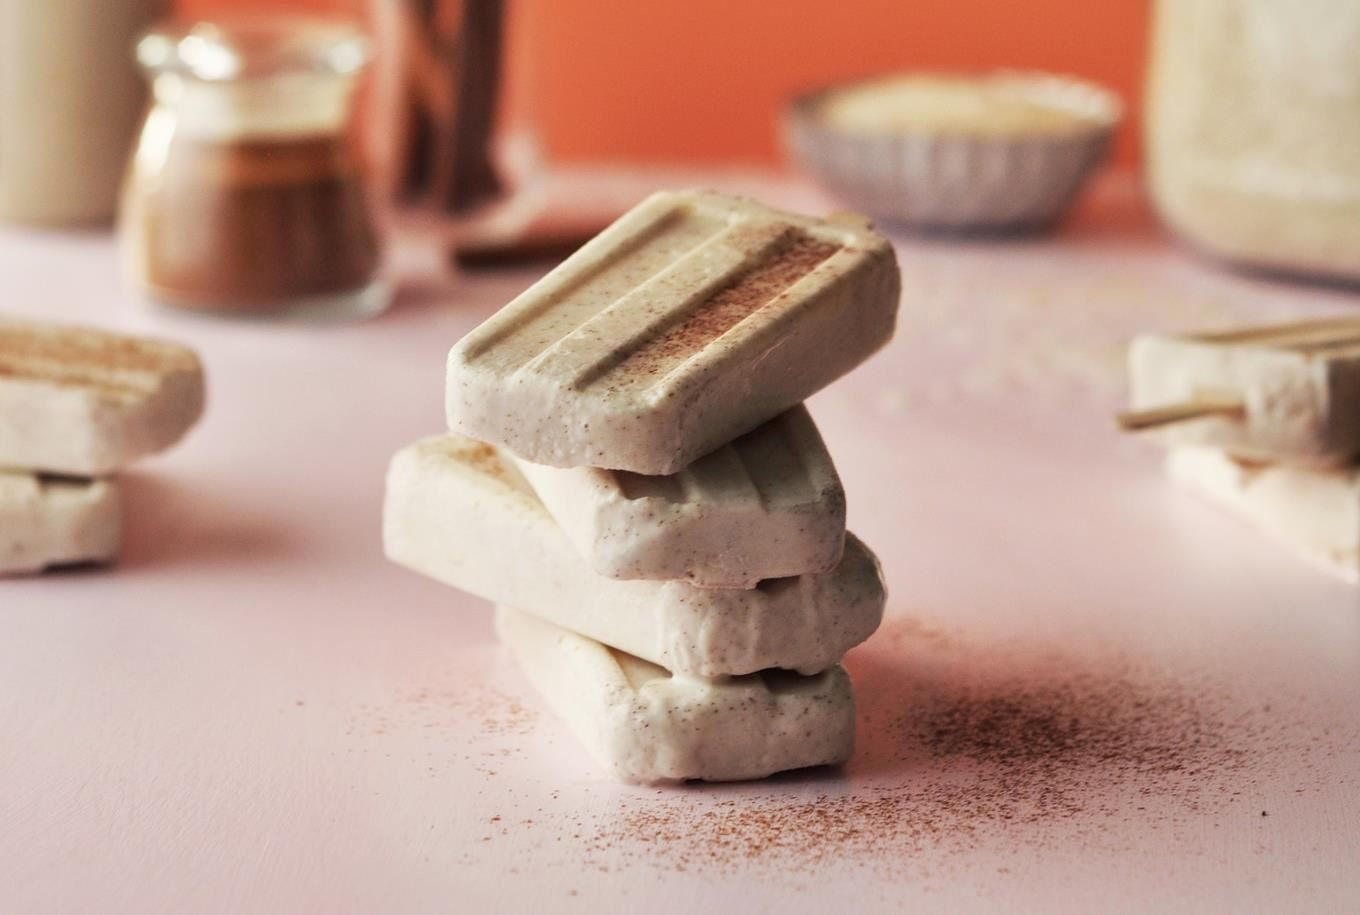 Hot Damn! These Homemade Popsicle Ideas Look Epic